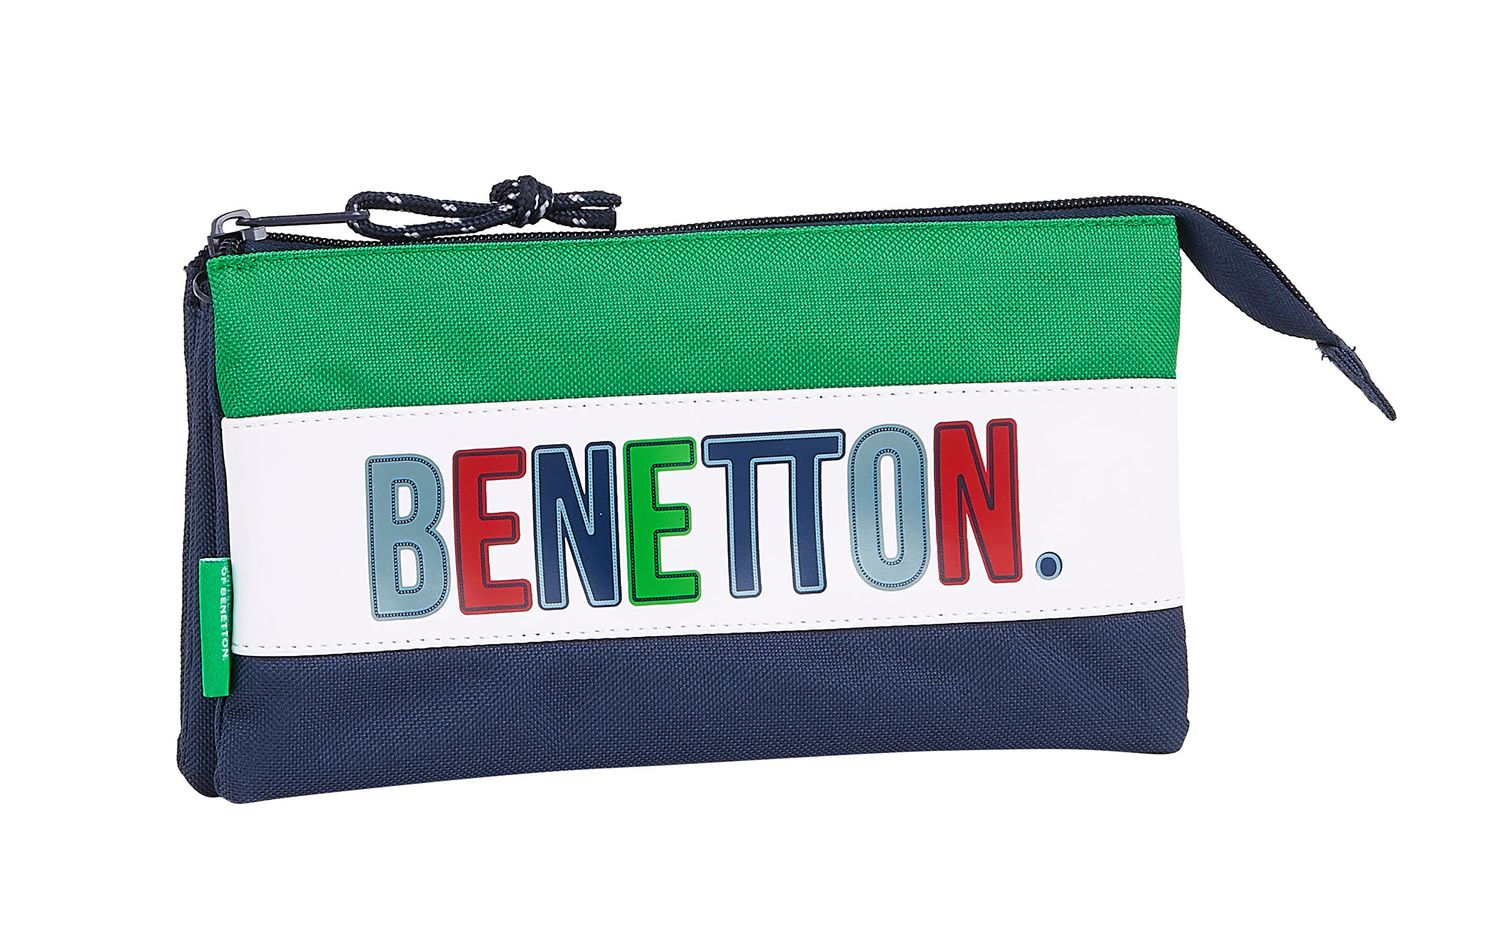 BENETTON 1965 Triple Pencil Case – image 1